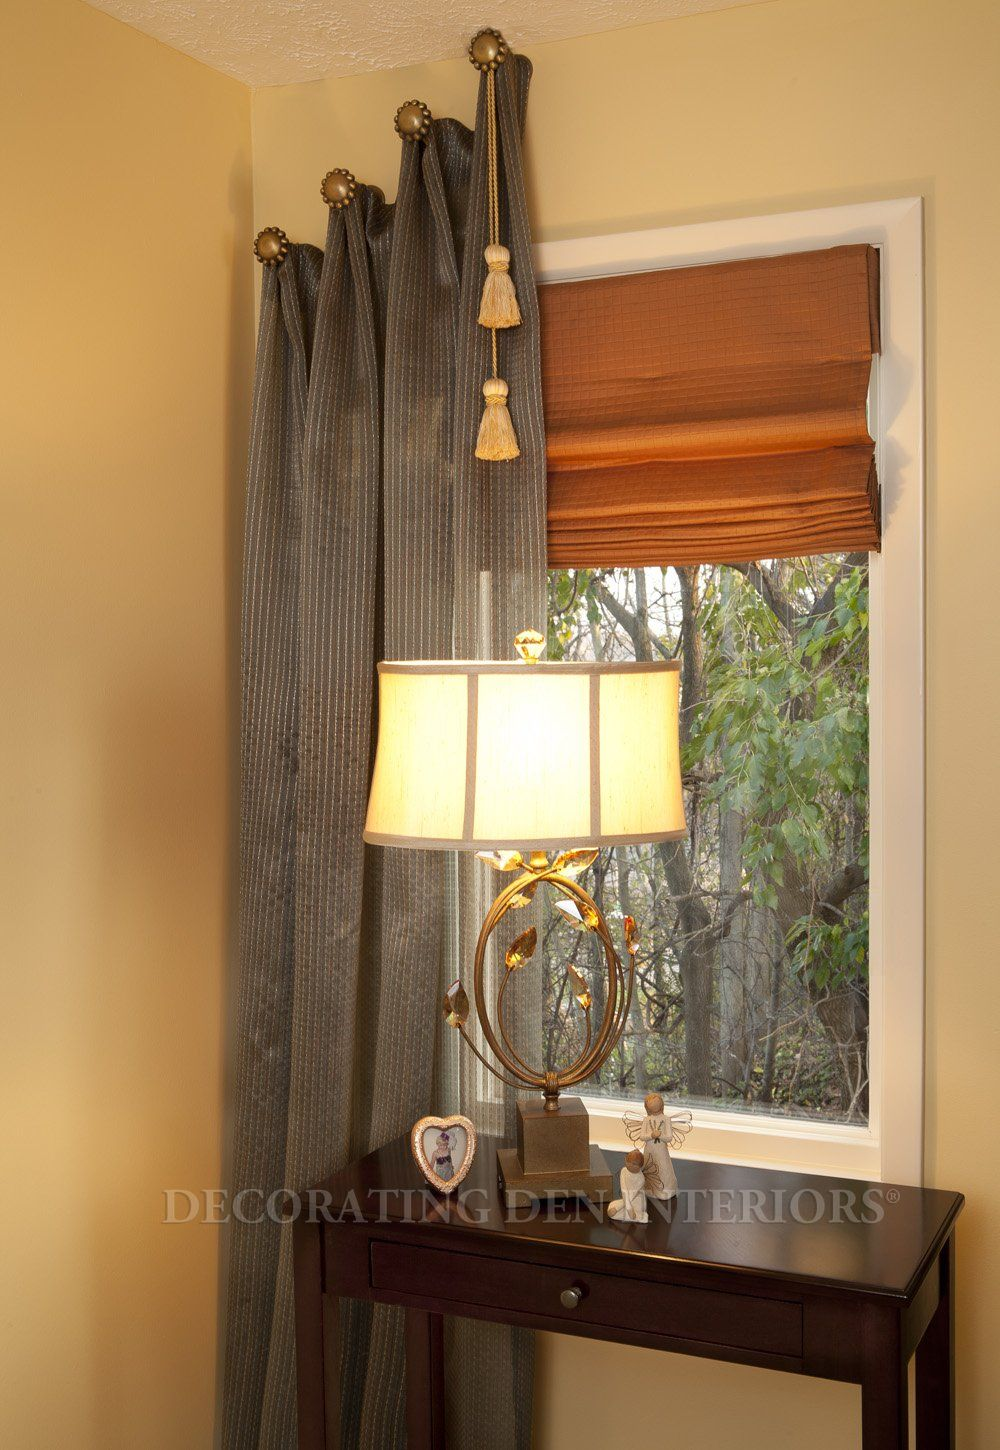 Window Treatments designs by Decorating Den Interiors. Want this ...